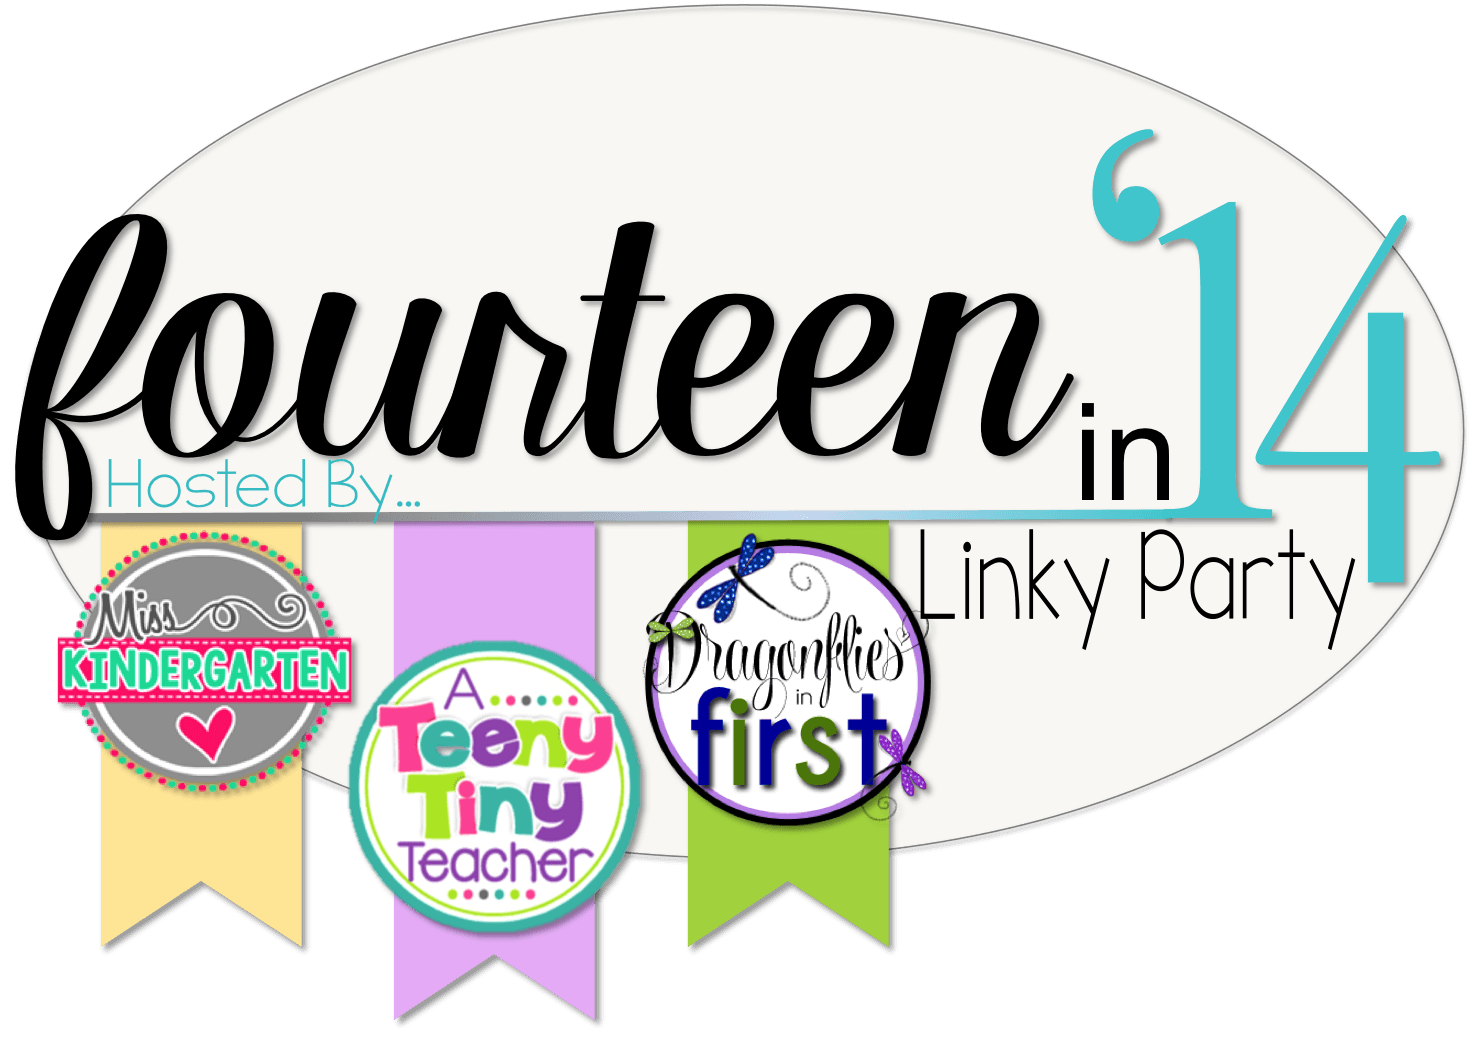 14 in '14 Linky Party!